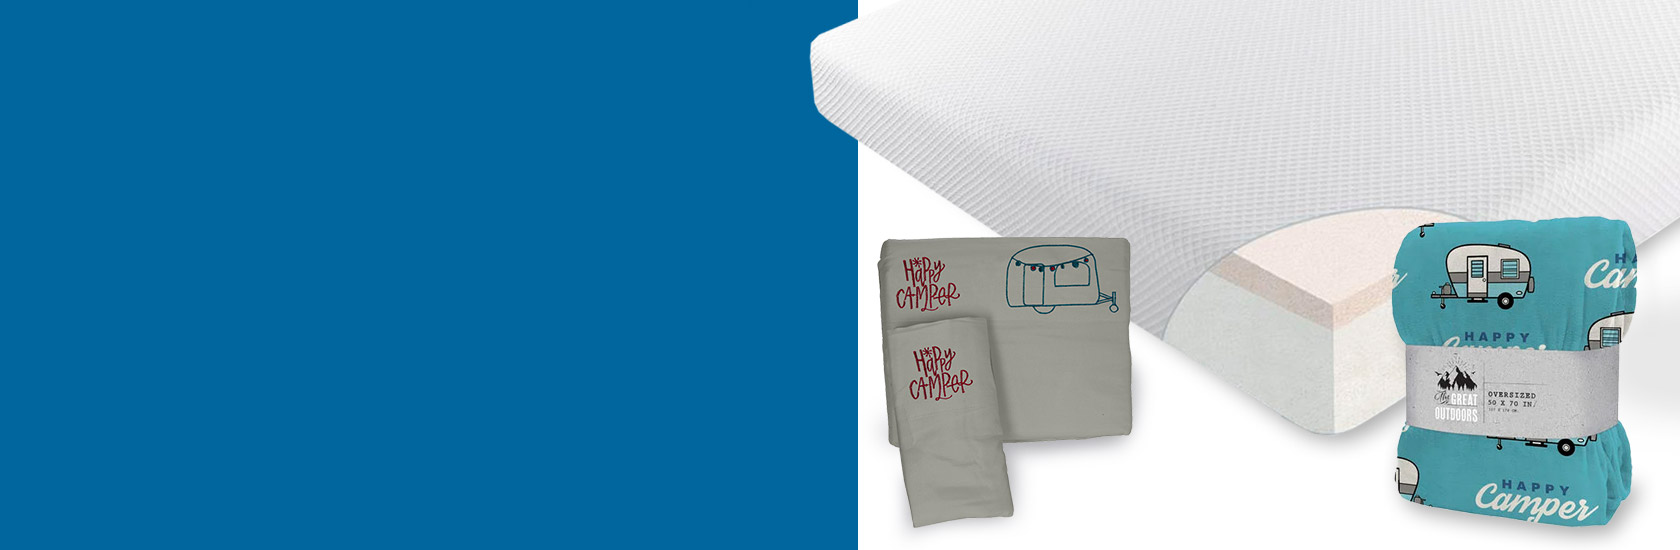 Shop the Best in Comfort Wherever You Go! Up to $250 off Mattresses, Toppers & Bedding